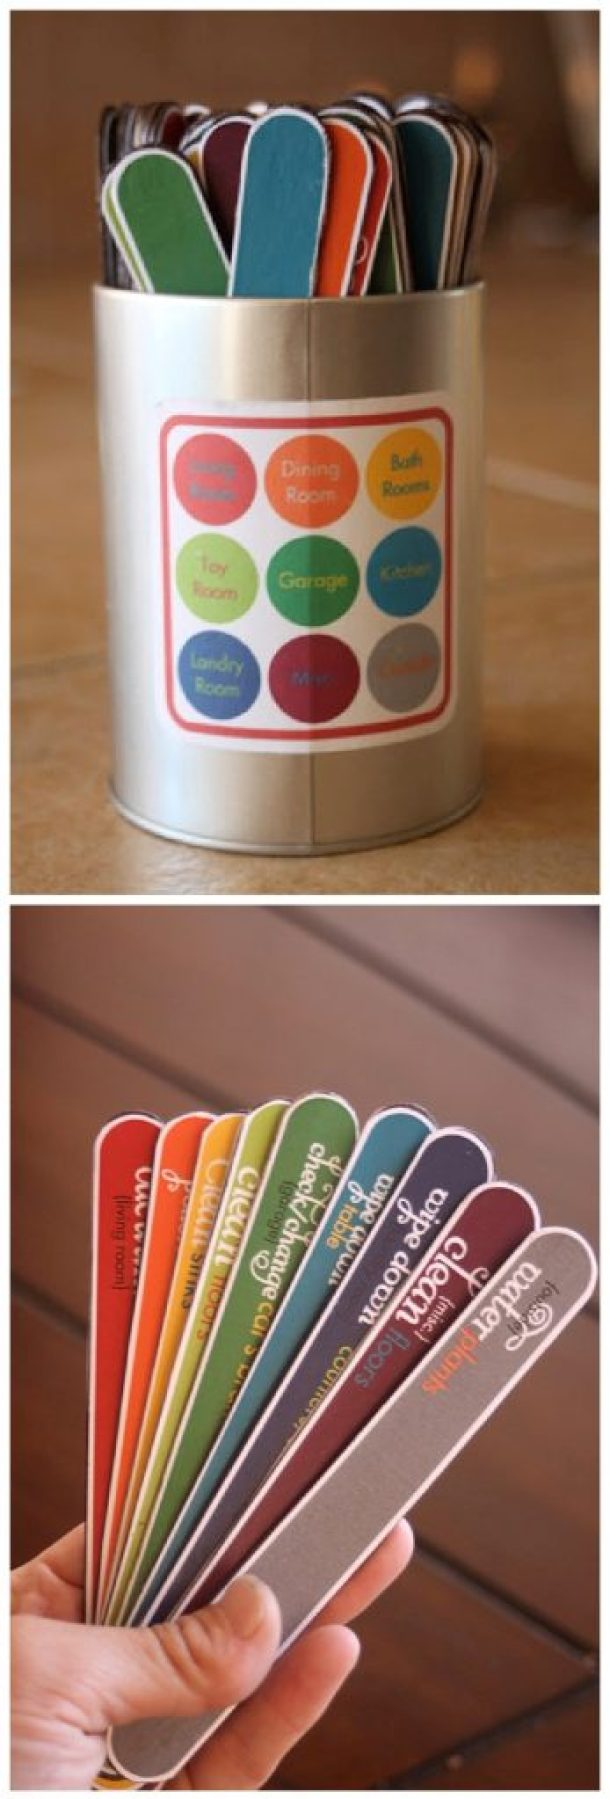 DIY Chore Charts - Kids Color Coded Chore Chart in a Can System with Free Printables via Whatever Dee Wants